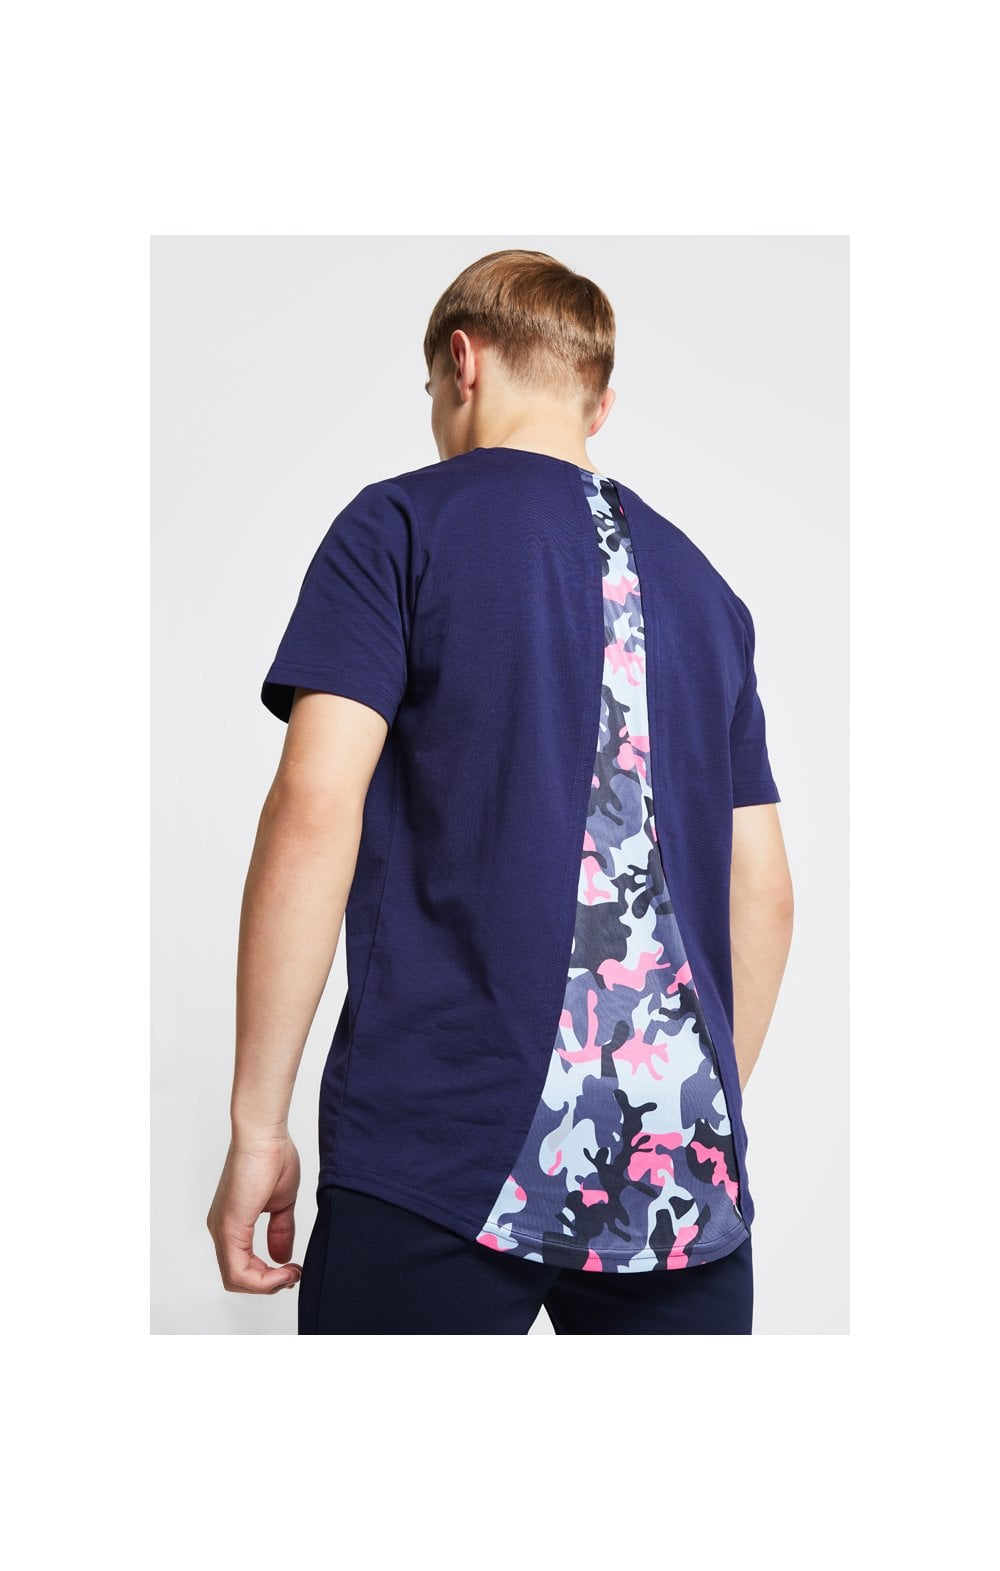 Load image into Gallery viewer, Illusive London Racer Back Tee – Navy & Neon Pink Camo (1)